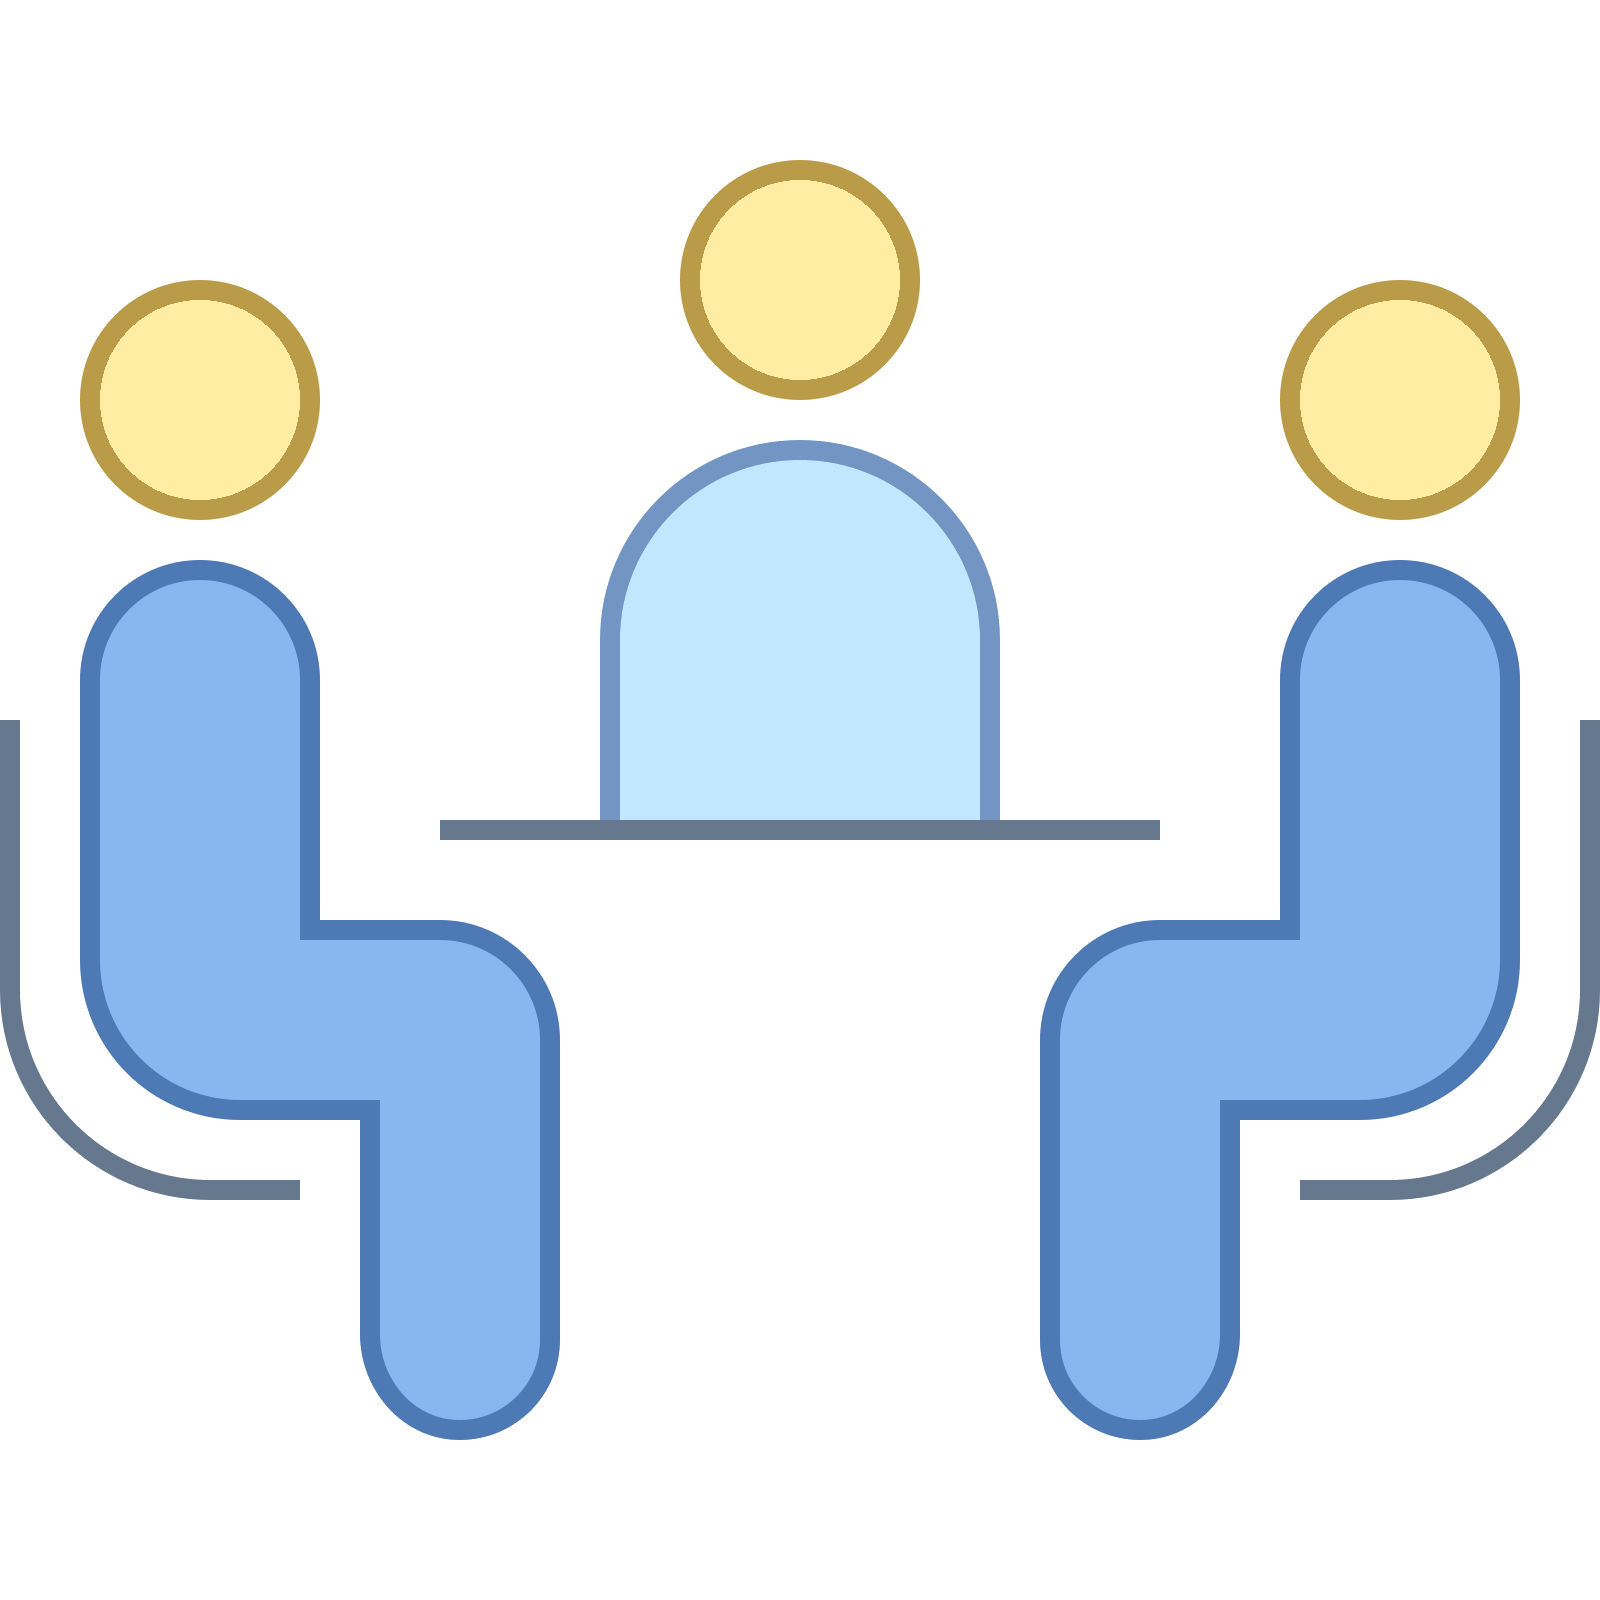 Room vector. Meeting png icon